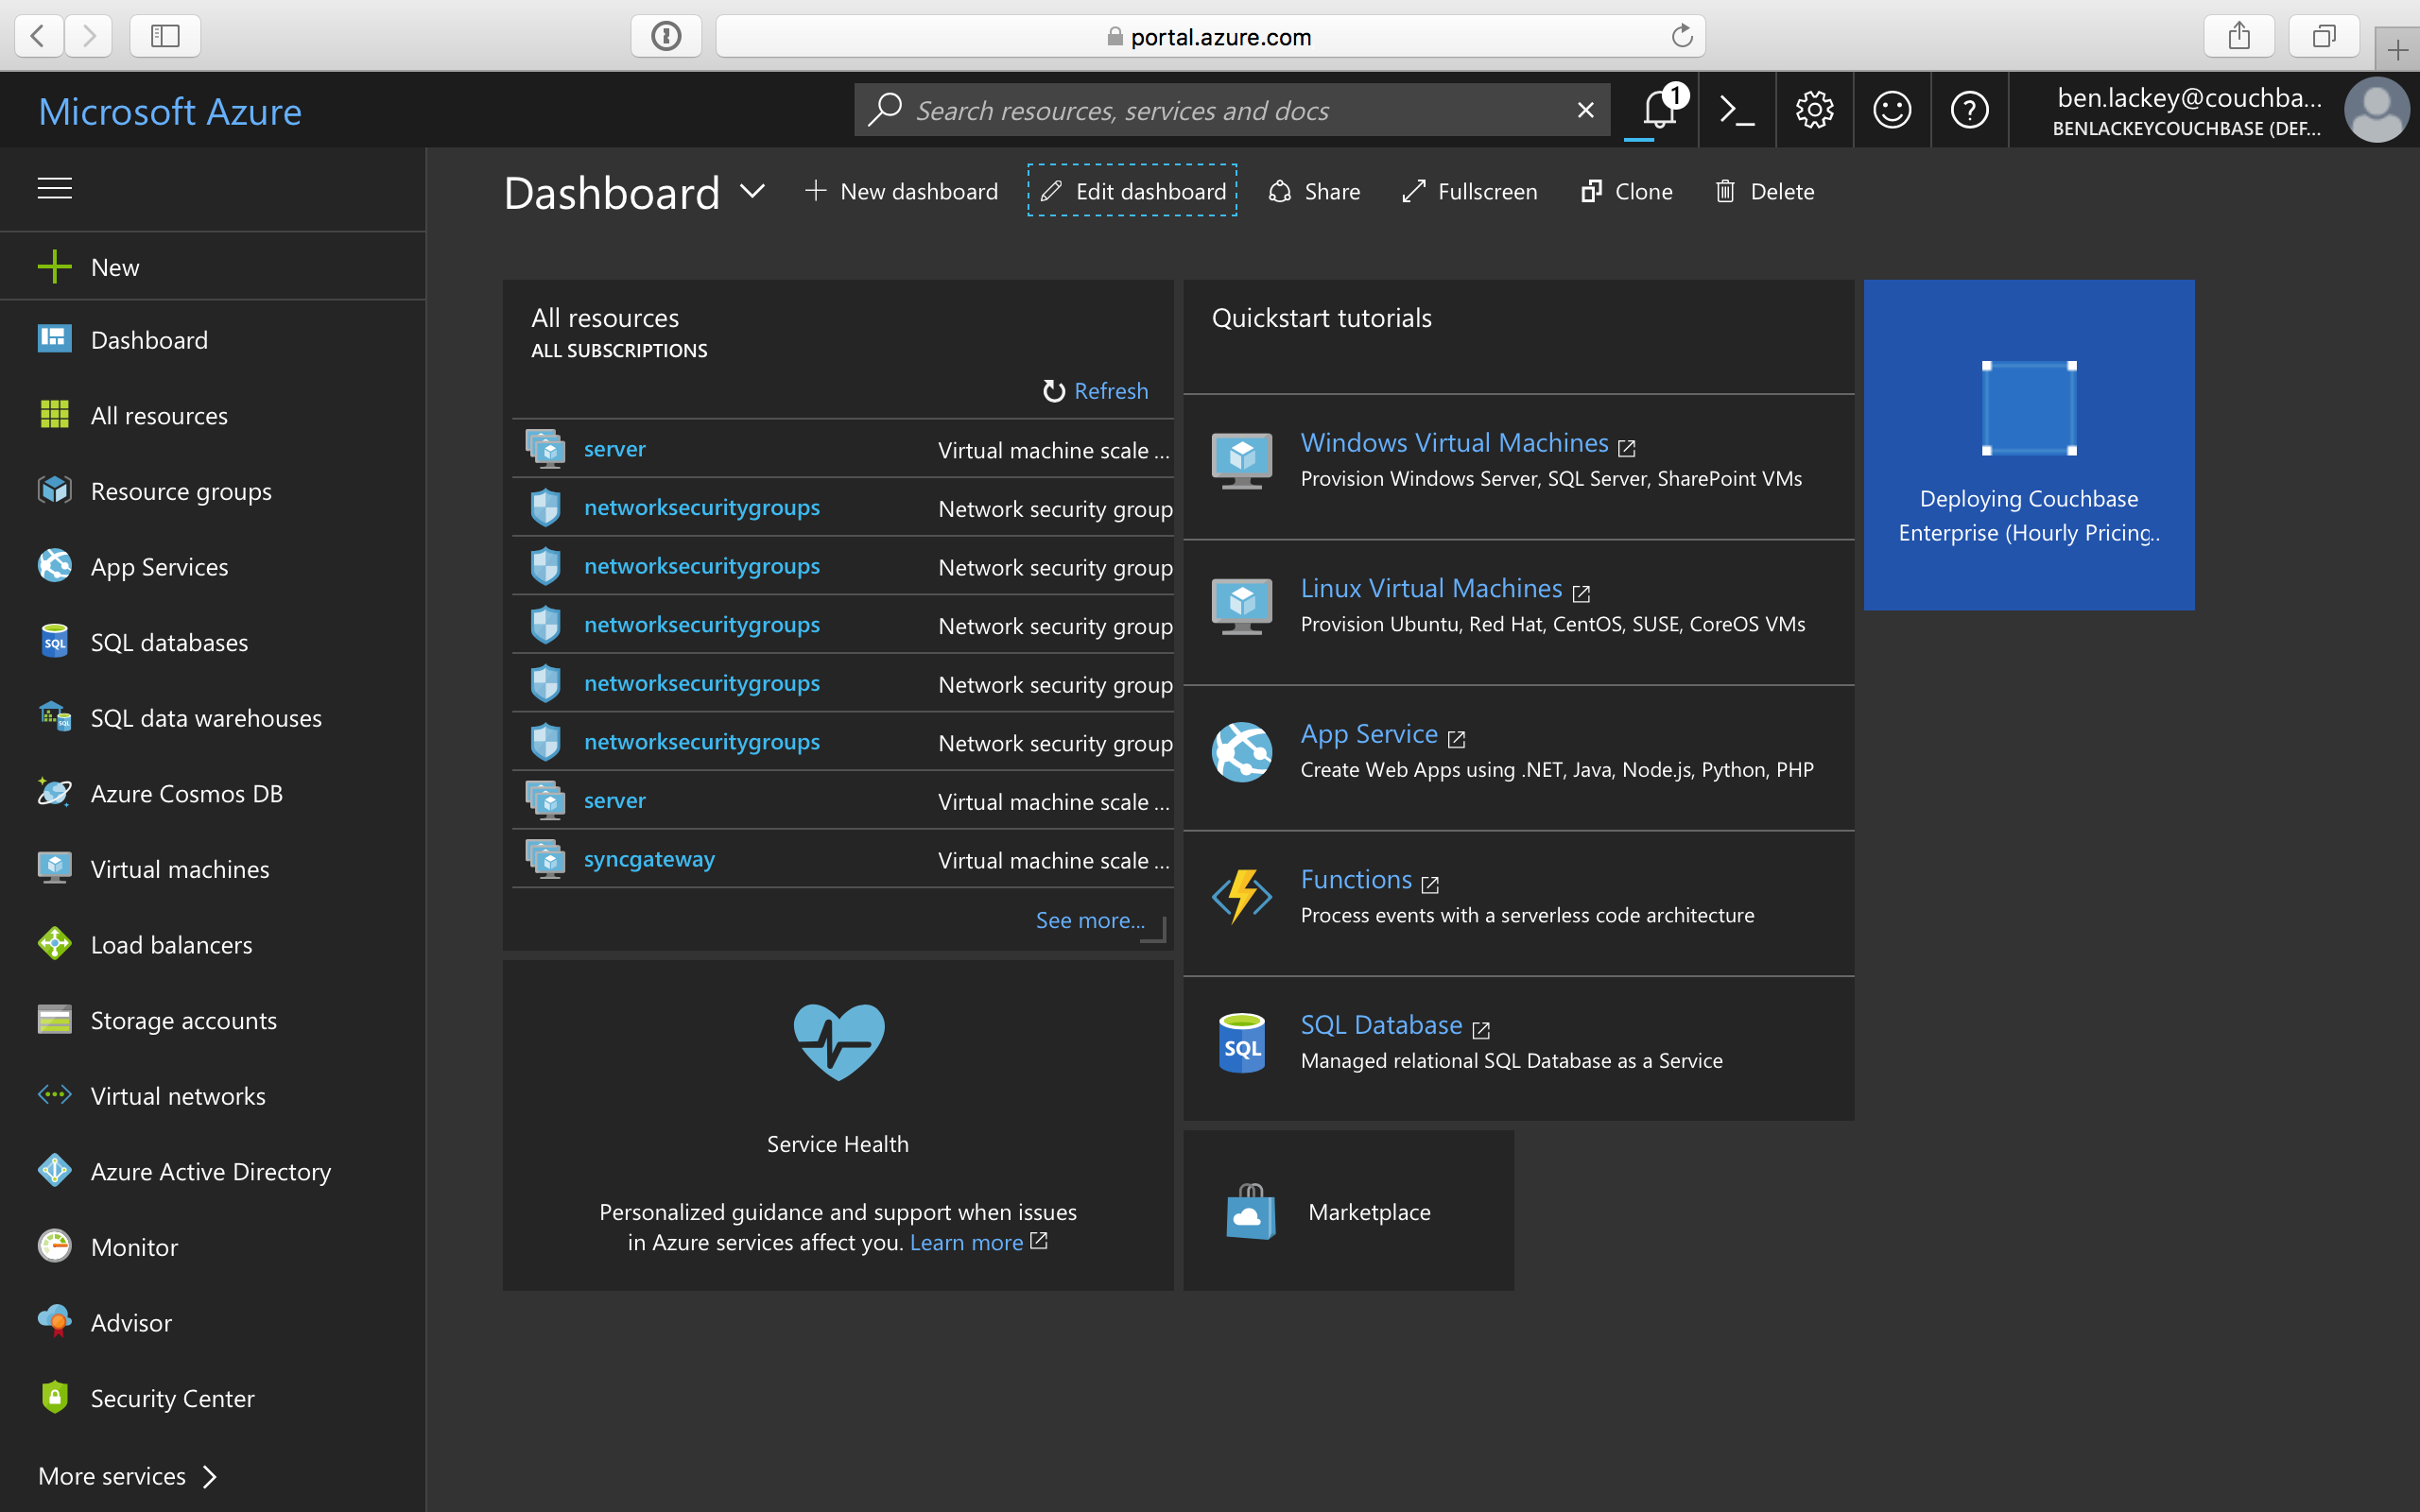 How to] Deploy Couchbase from Azure Marketplace